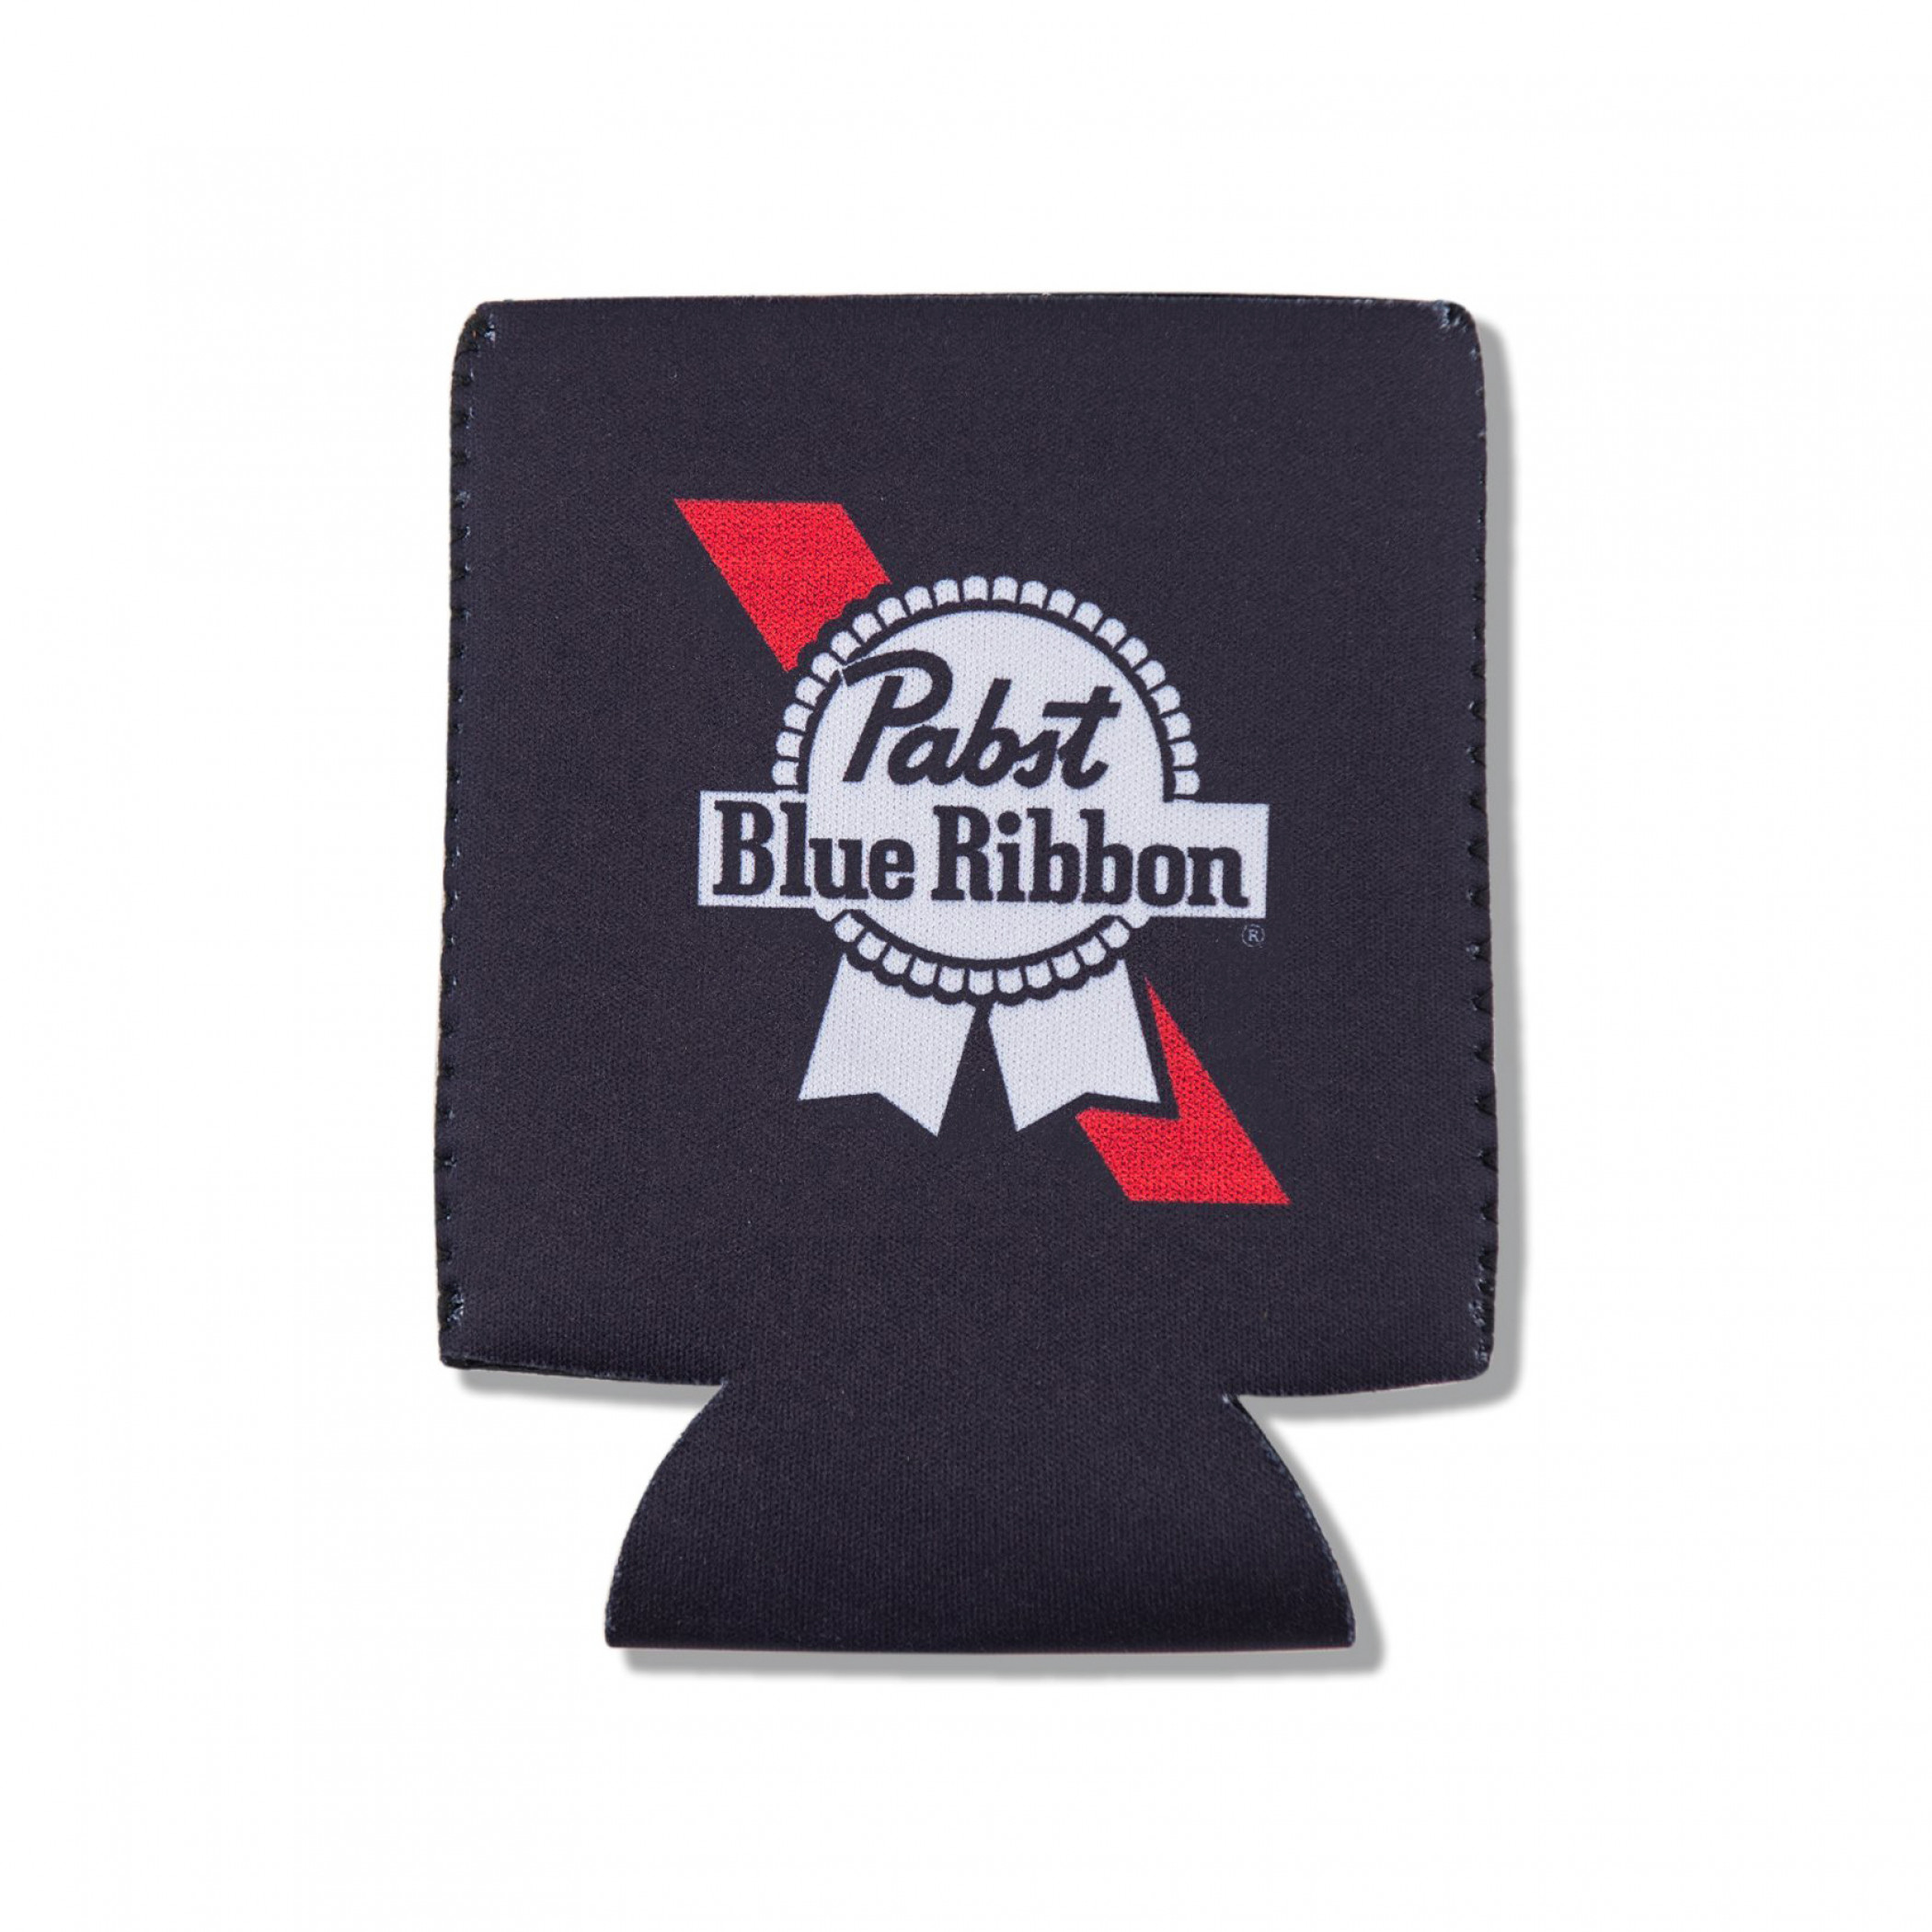 Pabst Blue Ribbon Beer Ribbon Logo Can Cooler